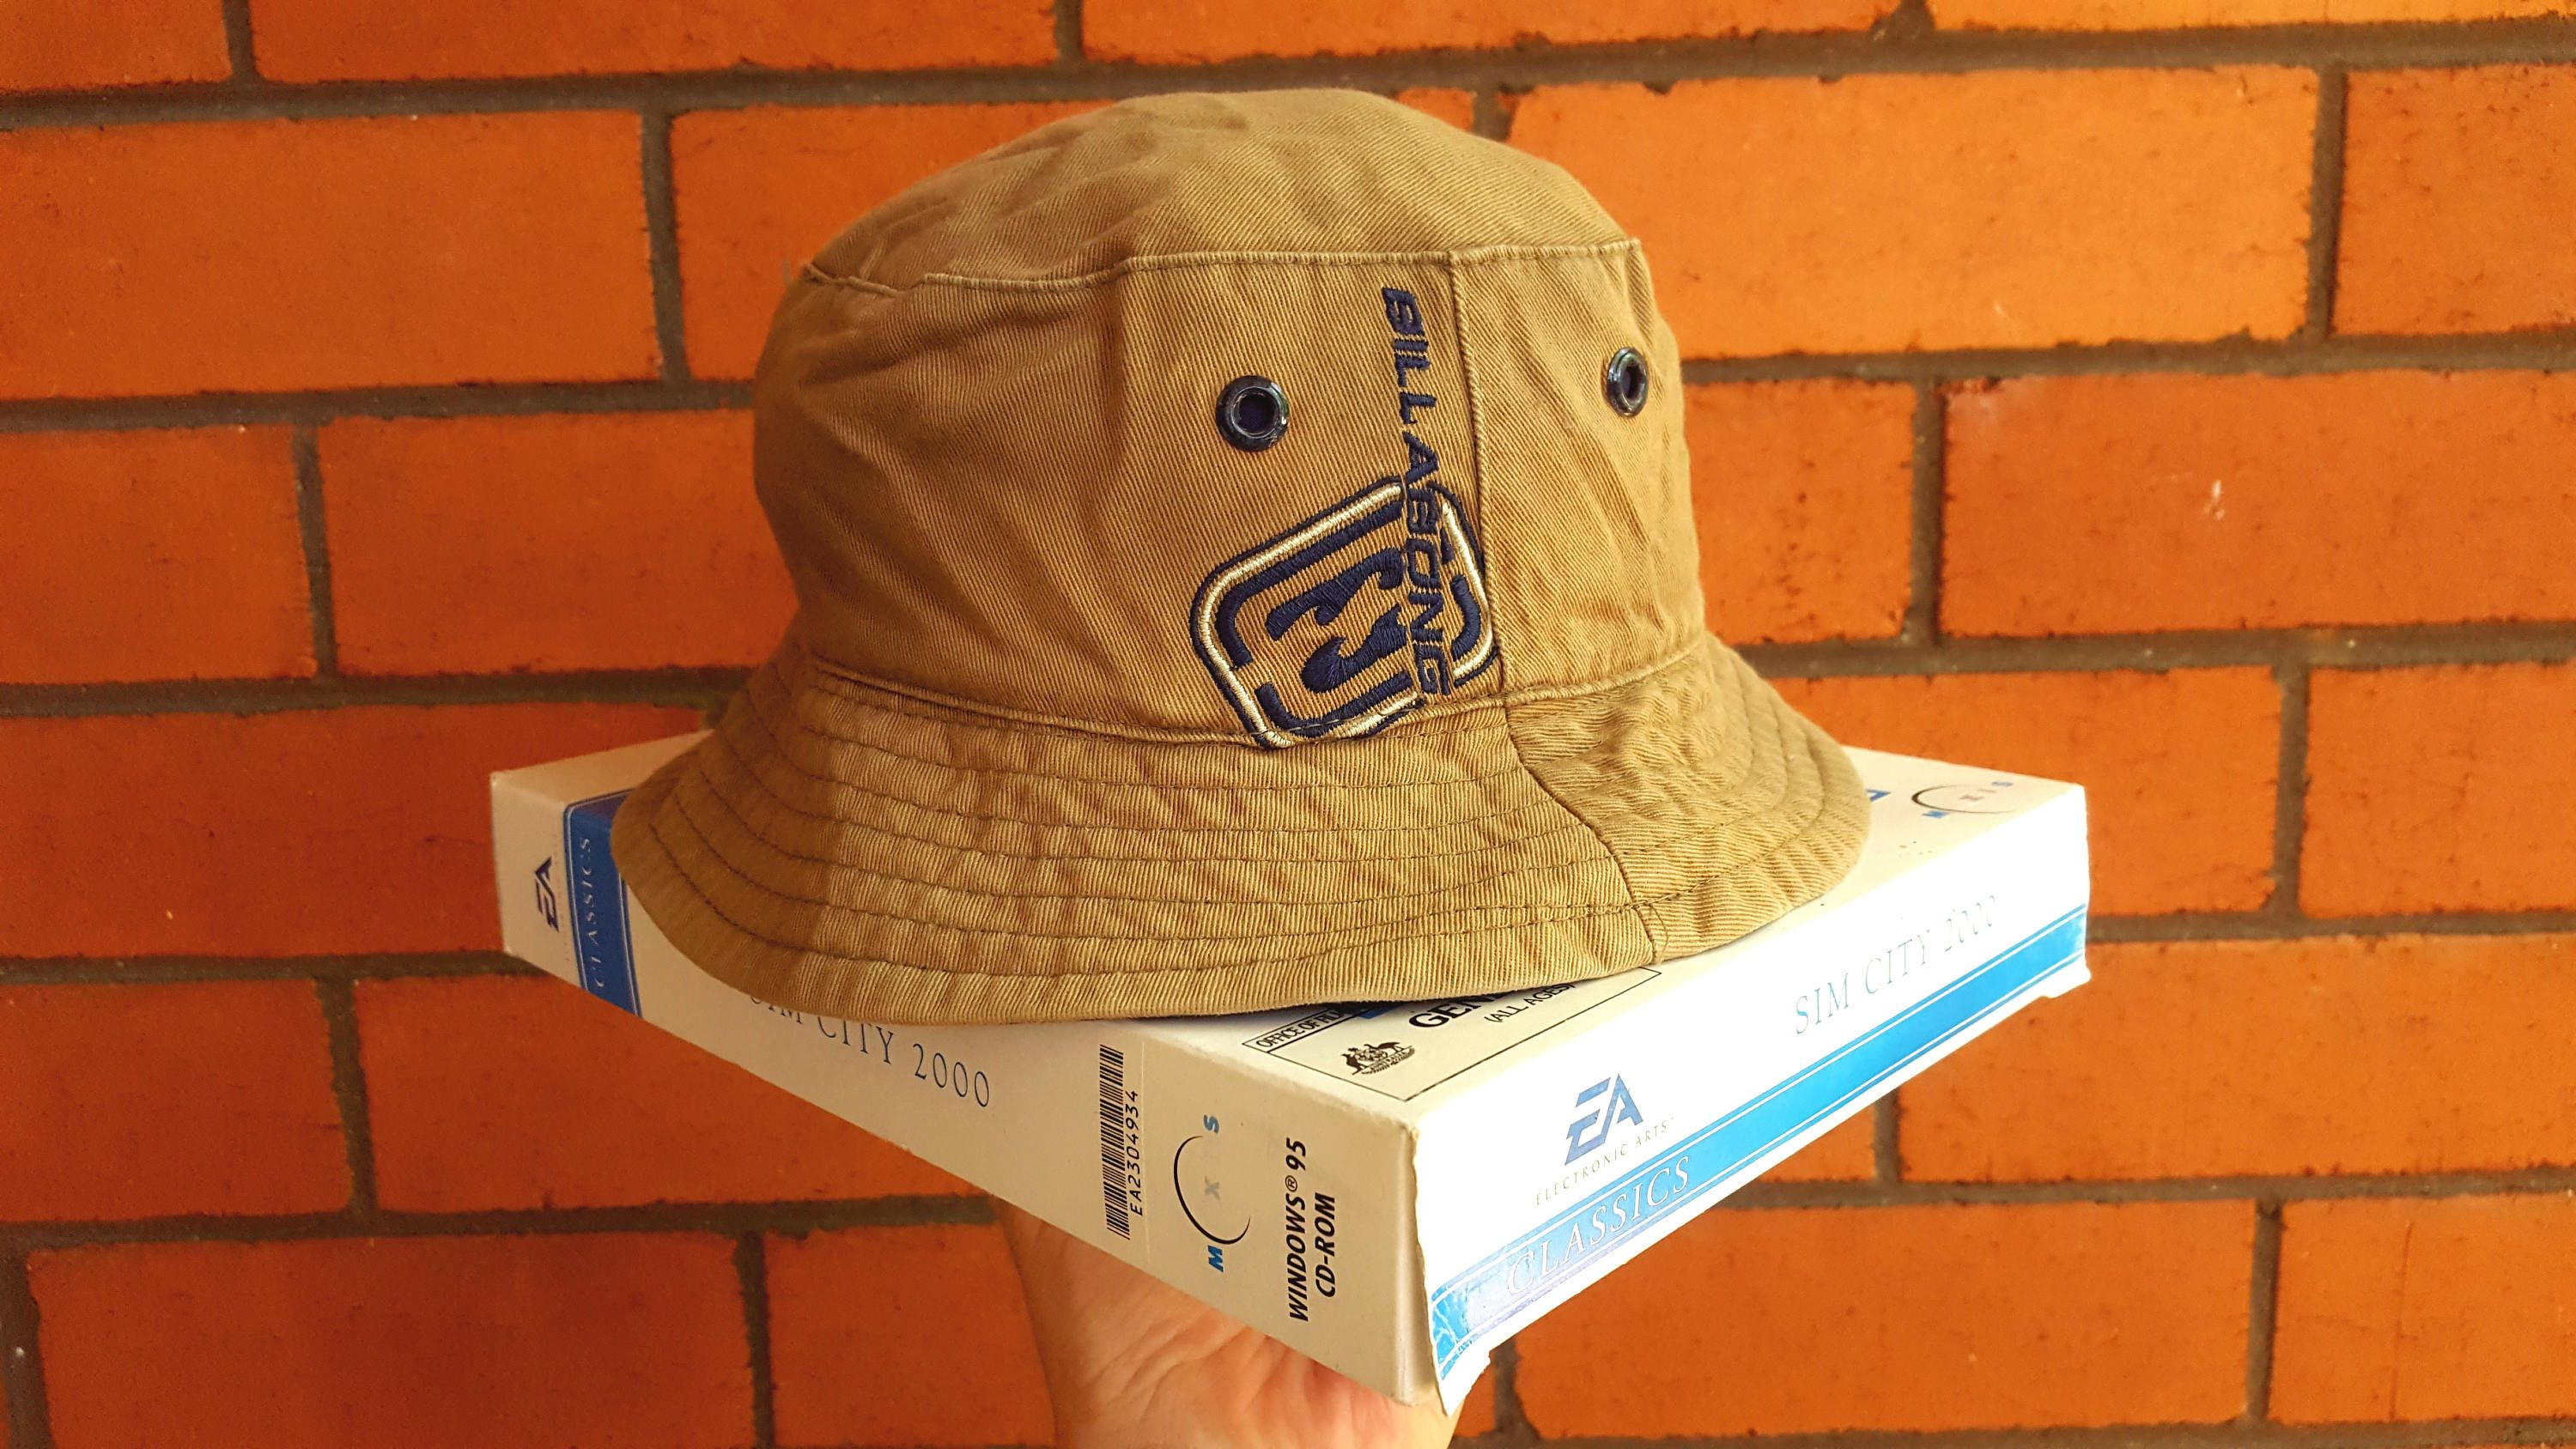 293870a6 Vintage Billabong Bucket Hat, Reversible Hat, Grunge, 90s Surfwear, Surfer,  Raver, Streetwear, Australian, Hip Hop, Aesthetic, Quiksilver, by NEONPOINT  on ...